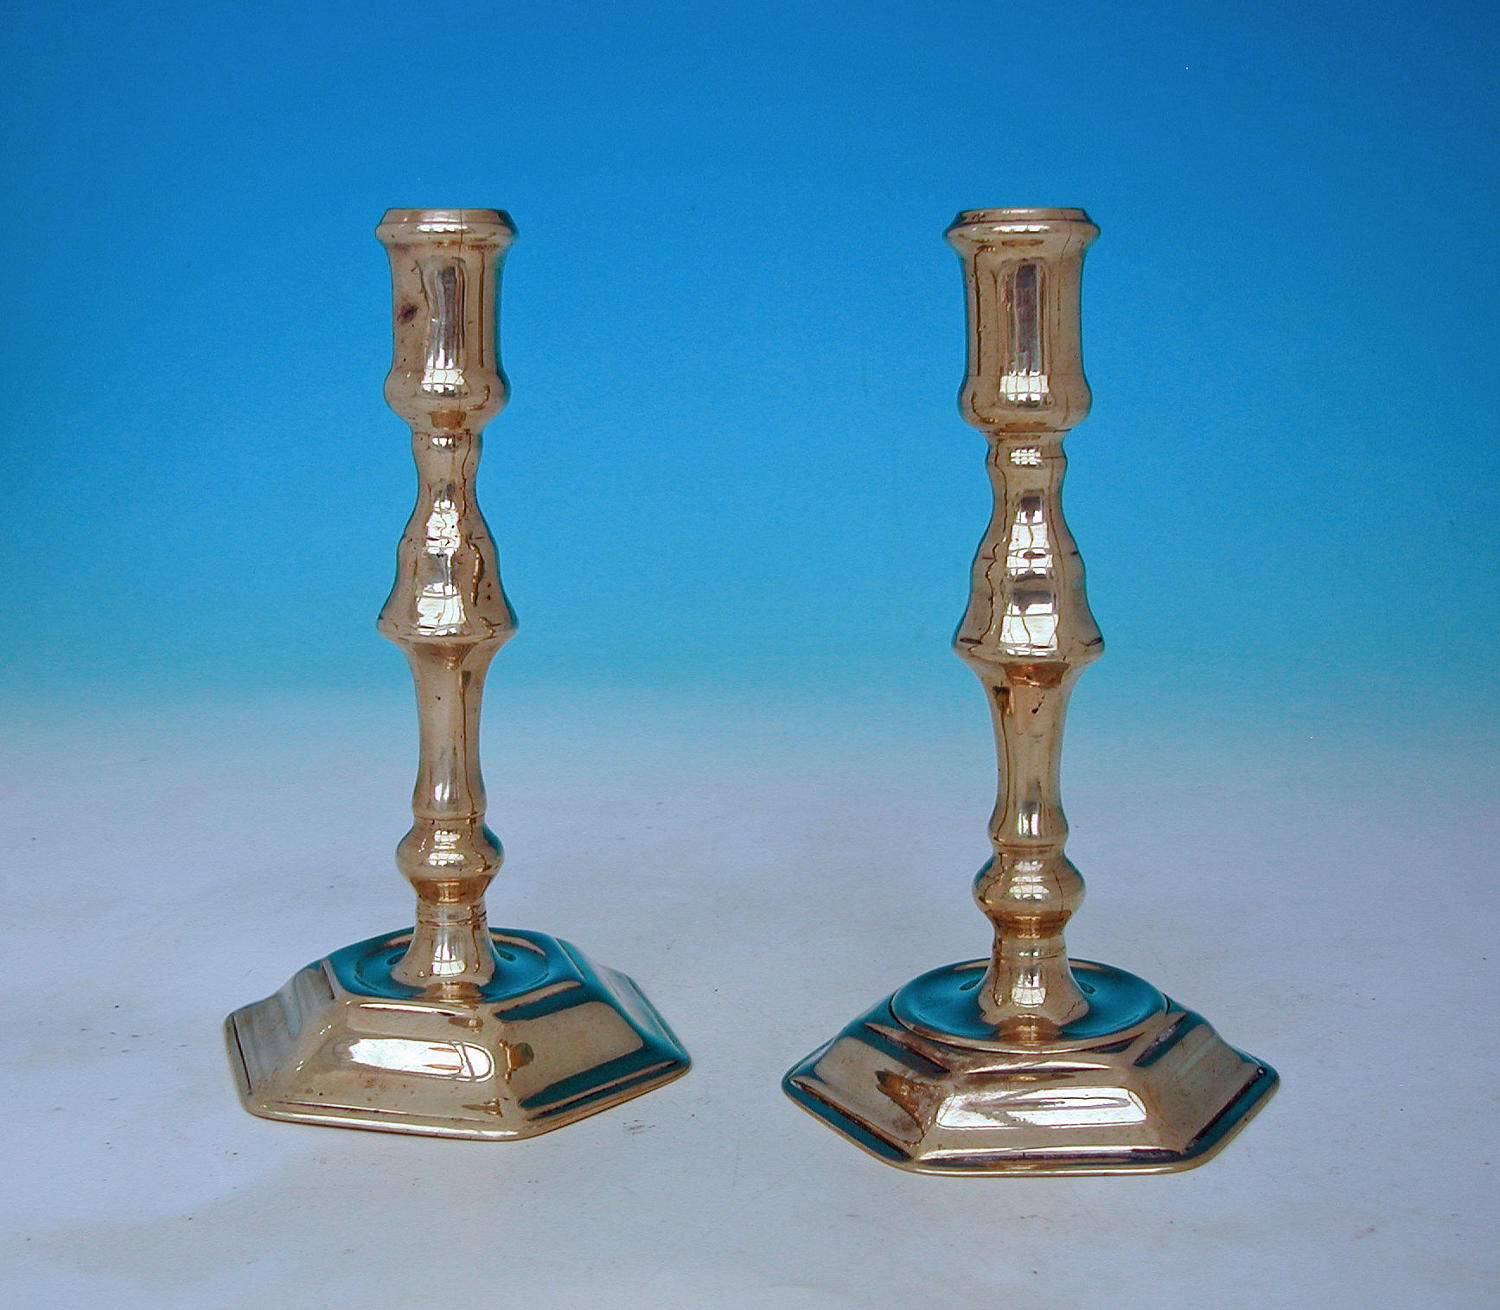 Antique Metalware 18thc Brass Candlesticks. English C1715-20